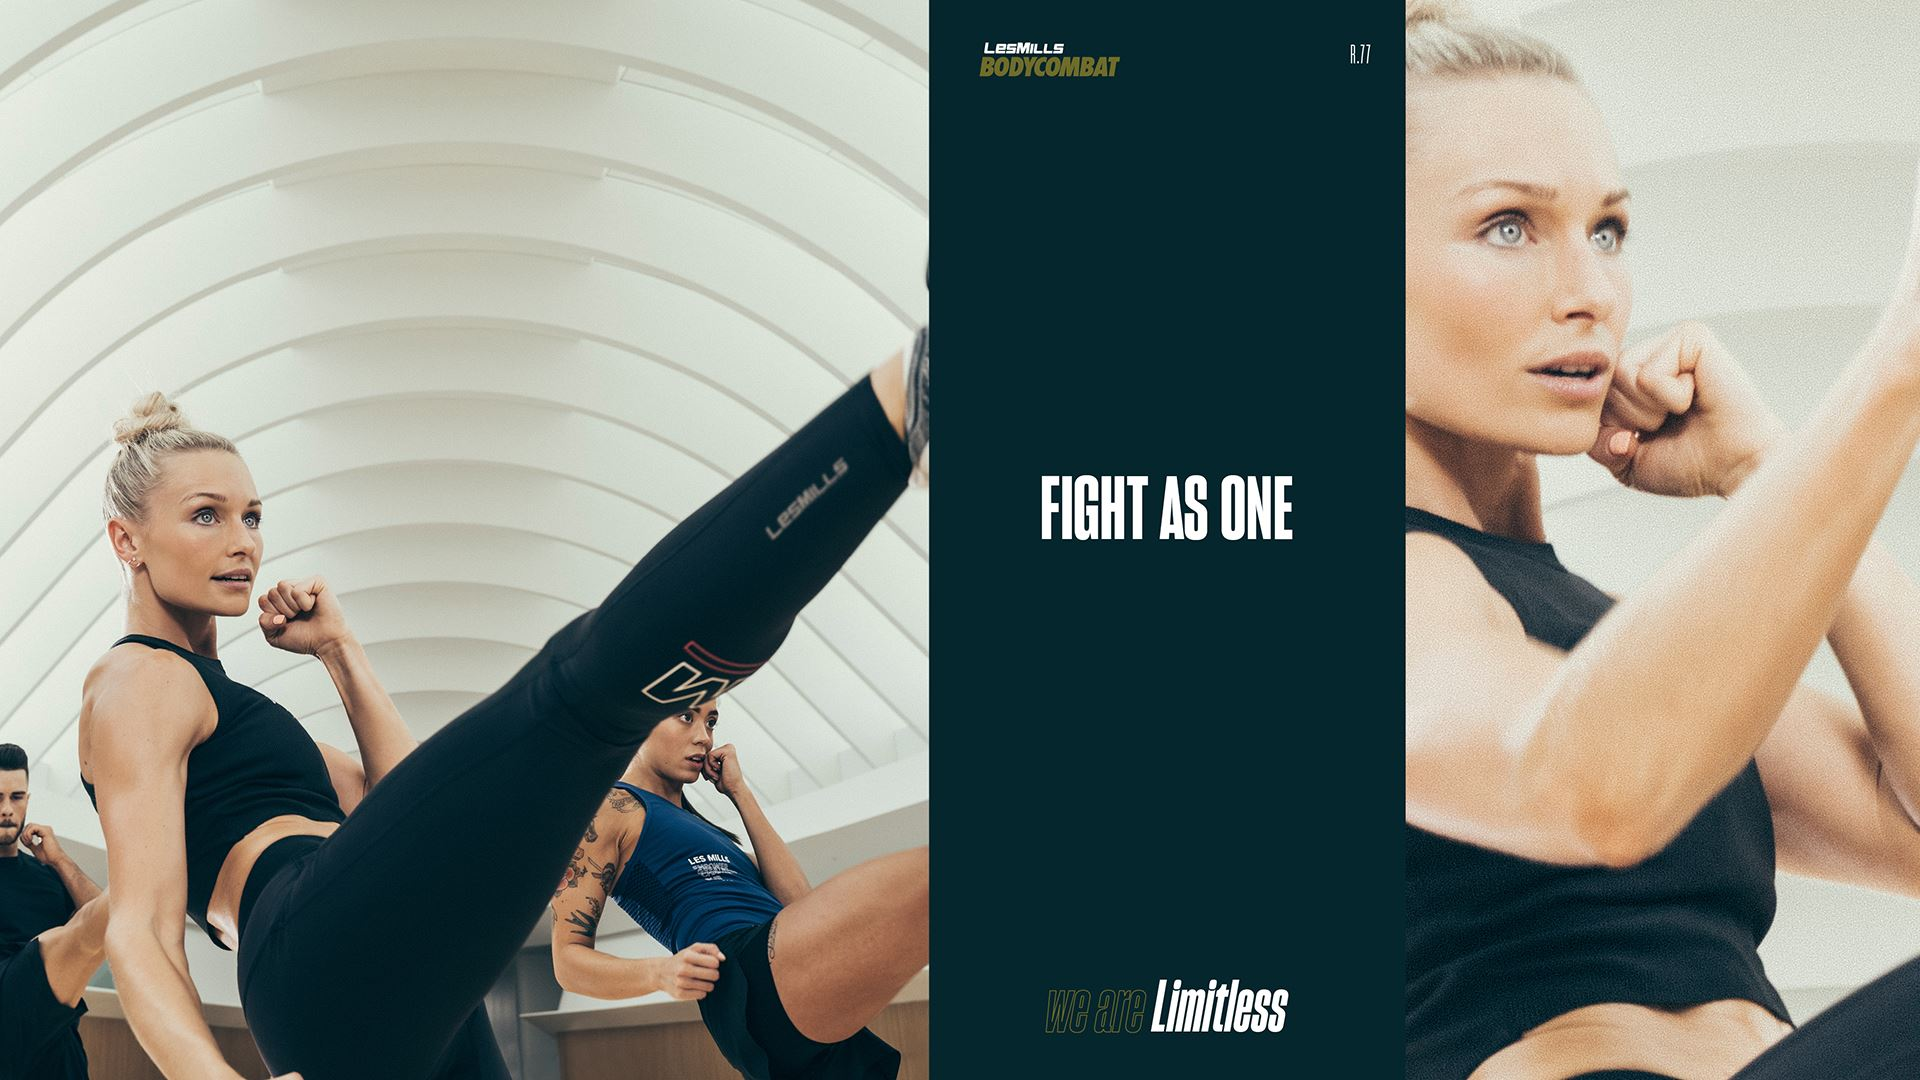 AUGUST 2018 BODYCOMBAT DIGITAL SCREEN